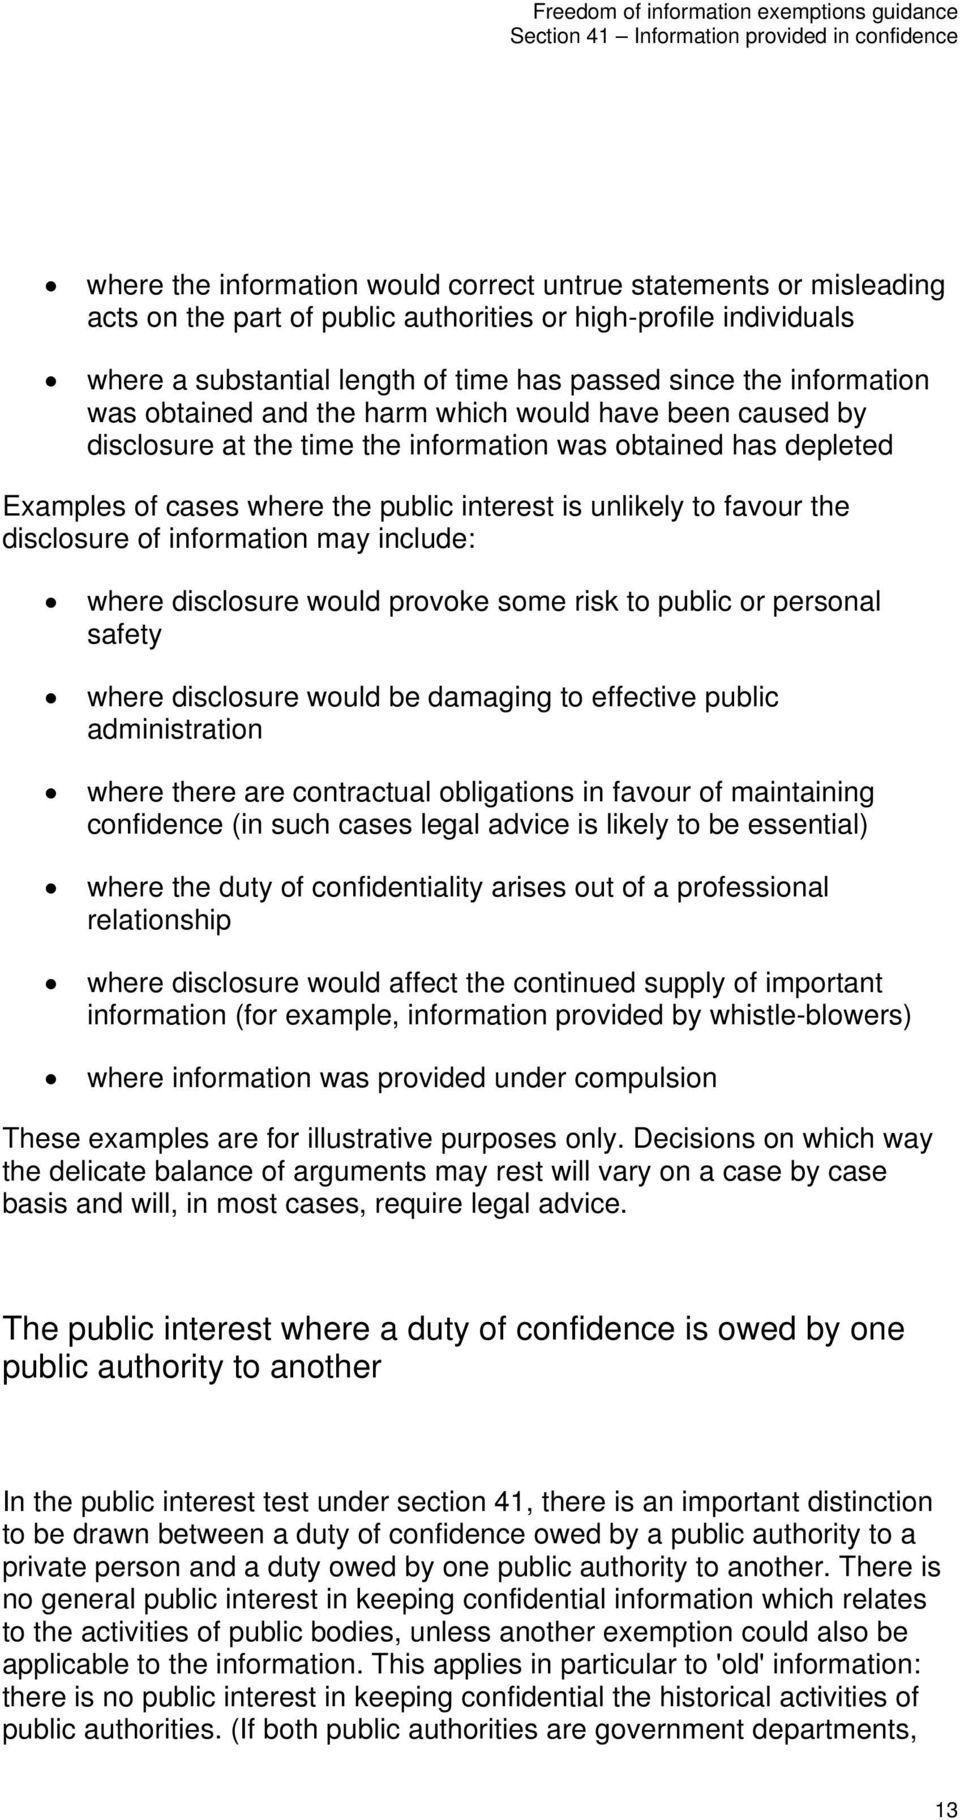 favour the disclosure of information may include: where disclosure would provoke some risk to public or personal safety where disclosure would be damaging to effective public administration where